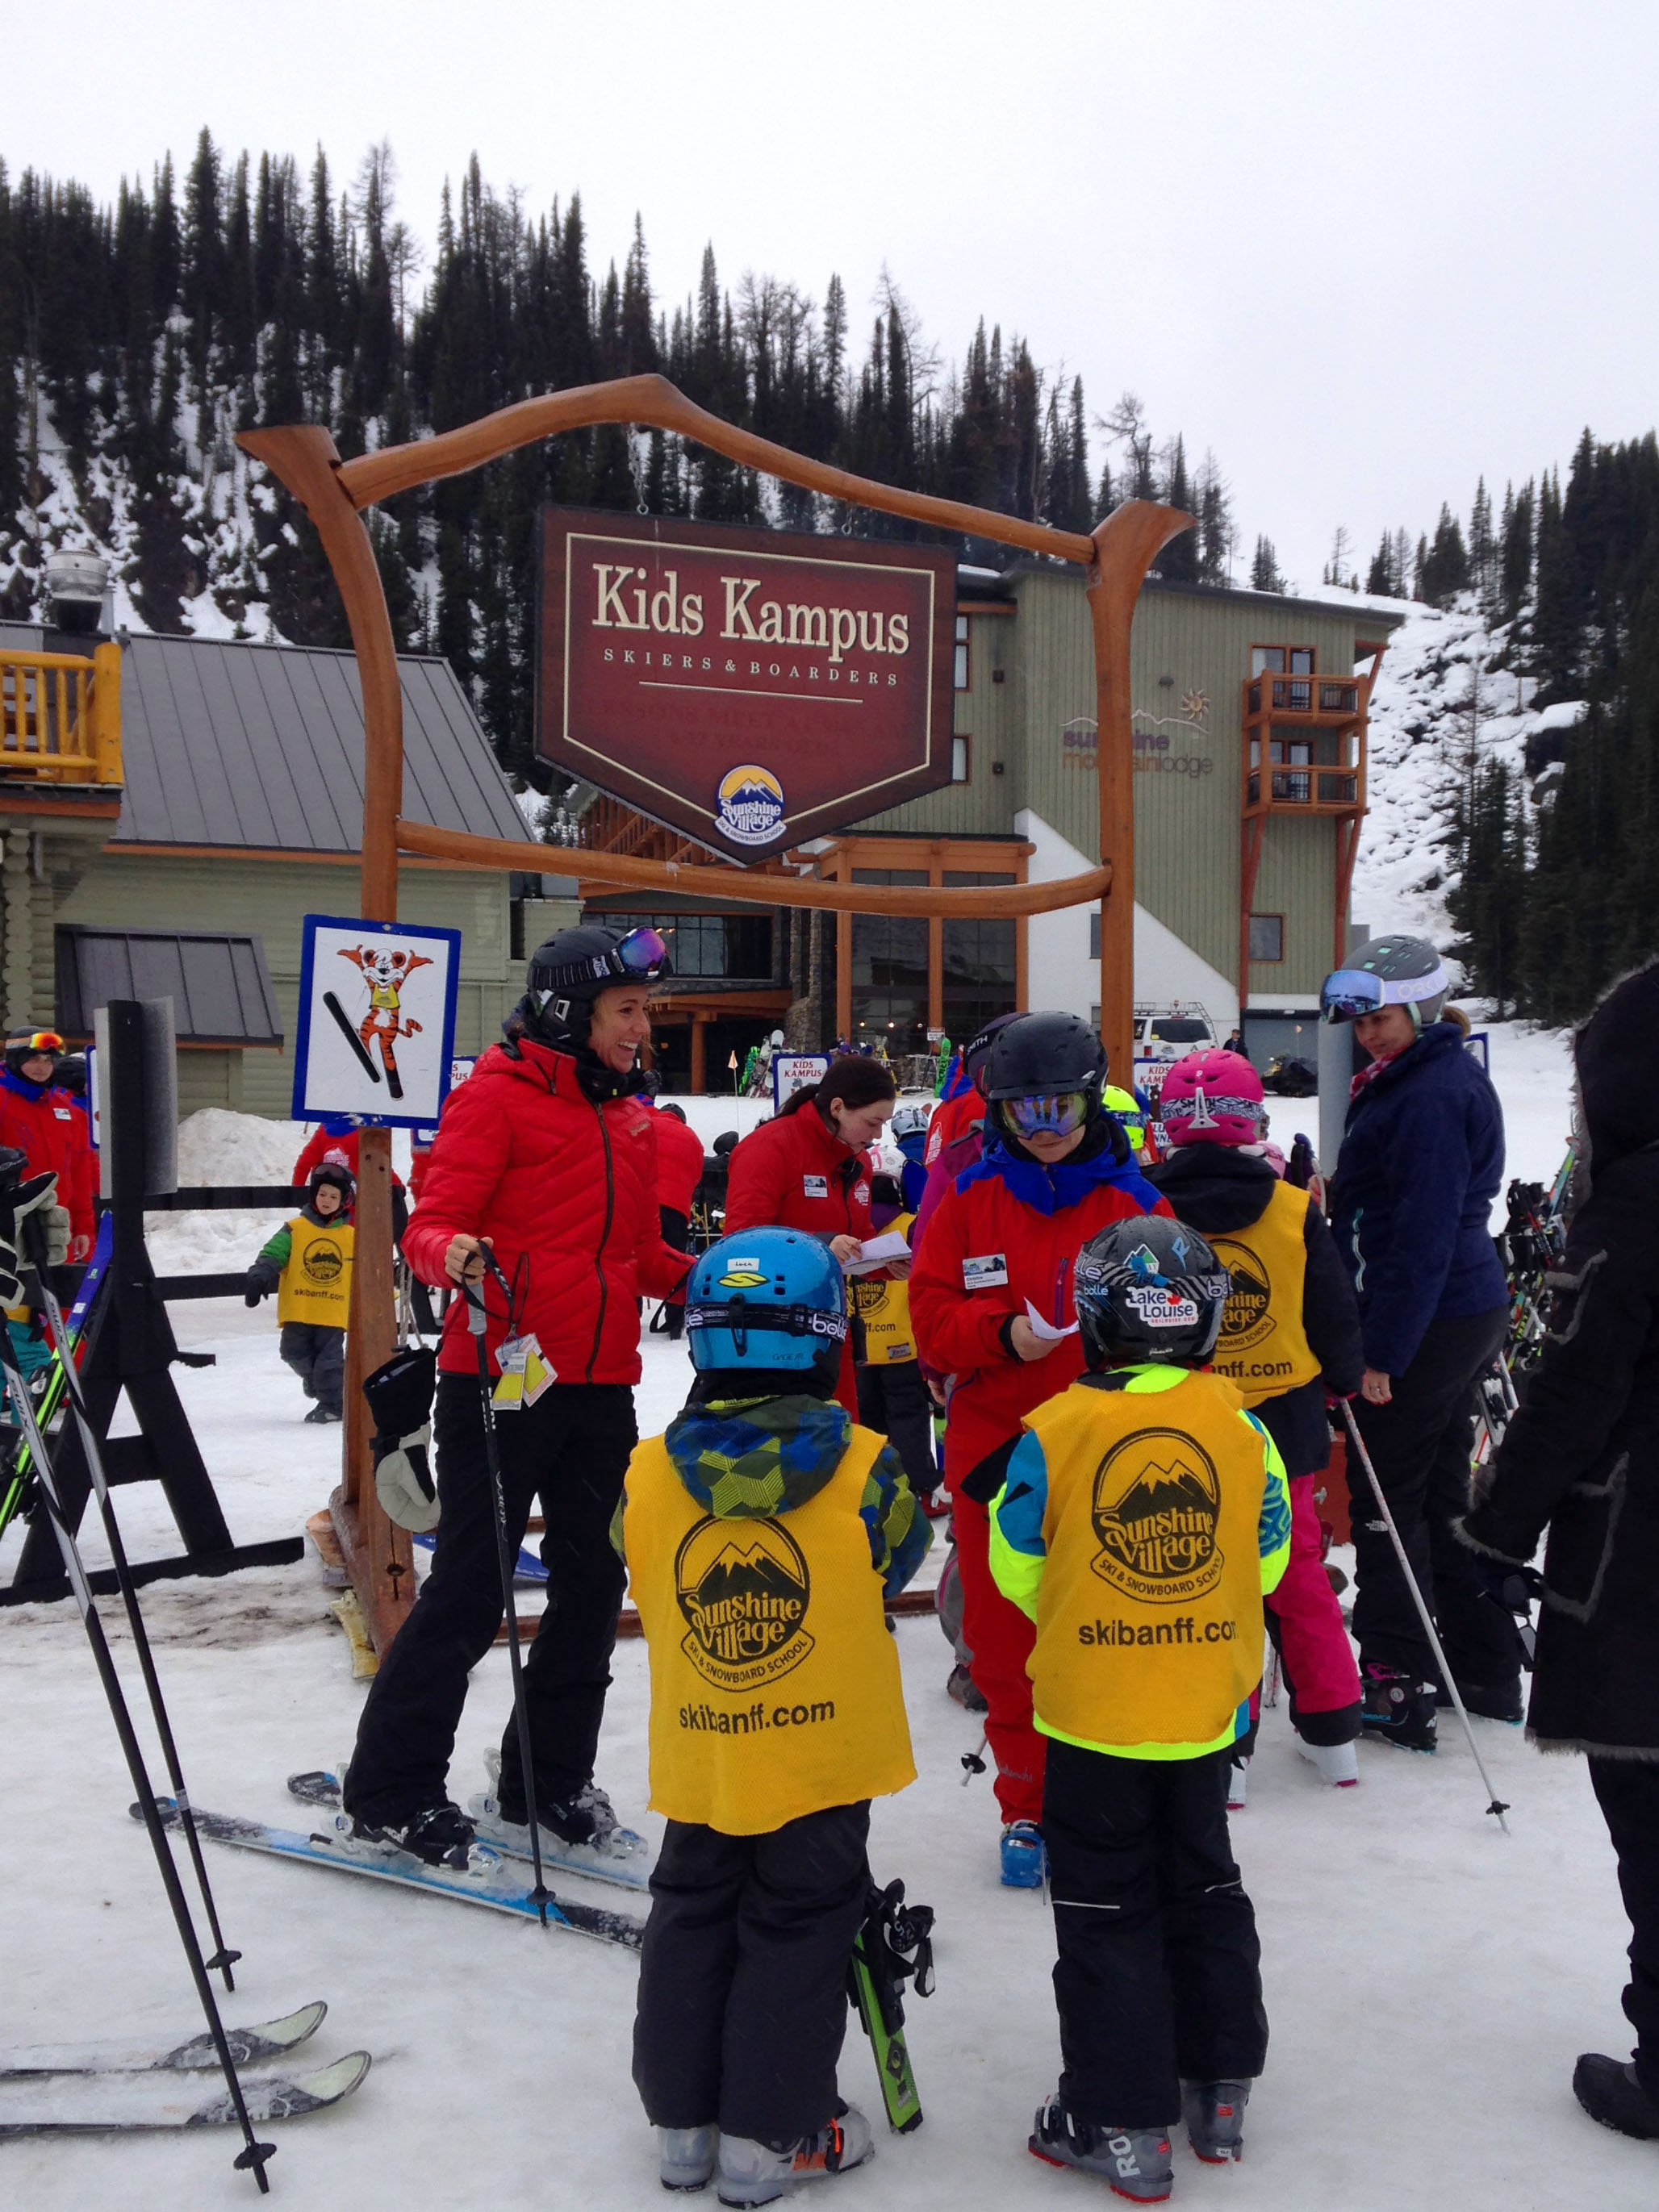 Find out the best things to do in Banff Sunshine Village Ski Resort with Kids, located in Banff National Park in Canada. Details about kids camp, daycare, lift tickets, lessons and more! Make your trip to Sunshine Village Resort with kids easy with all these great winter ski and snowboard tips. #sunshinevillage #canada #skivacation #skifamily #skitrip